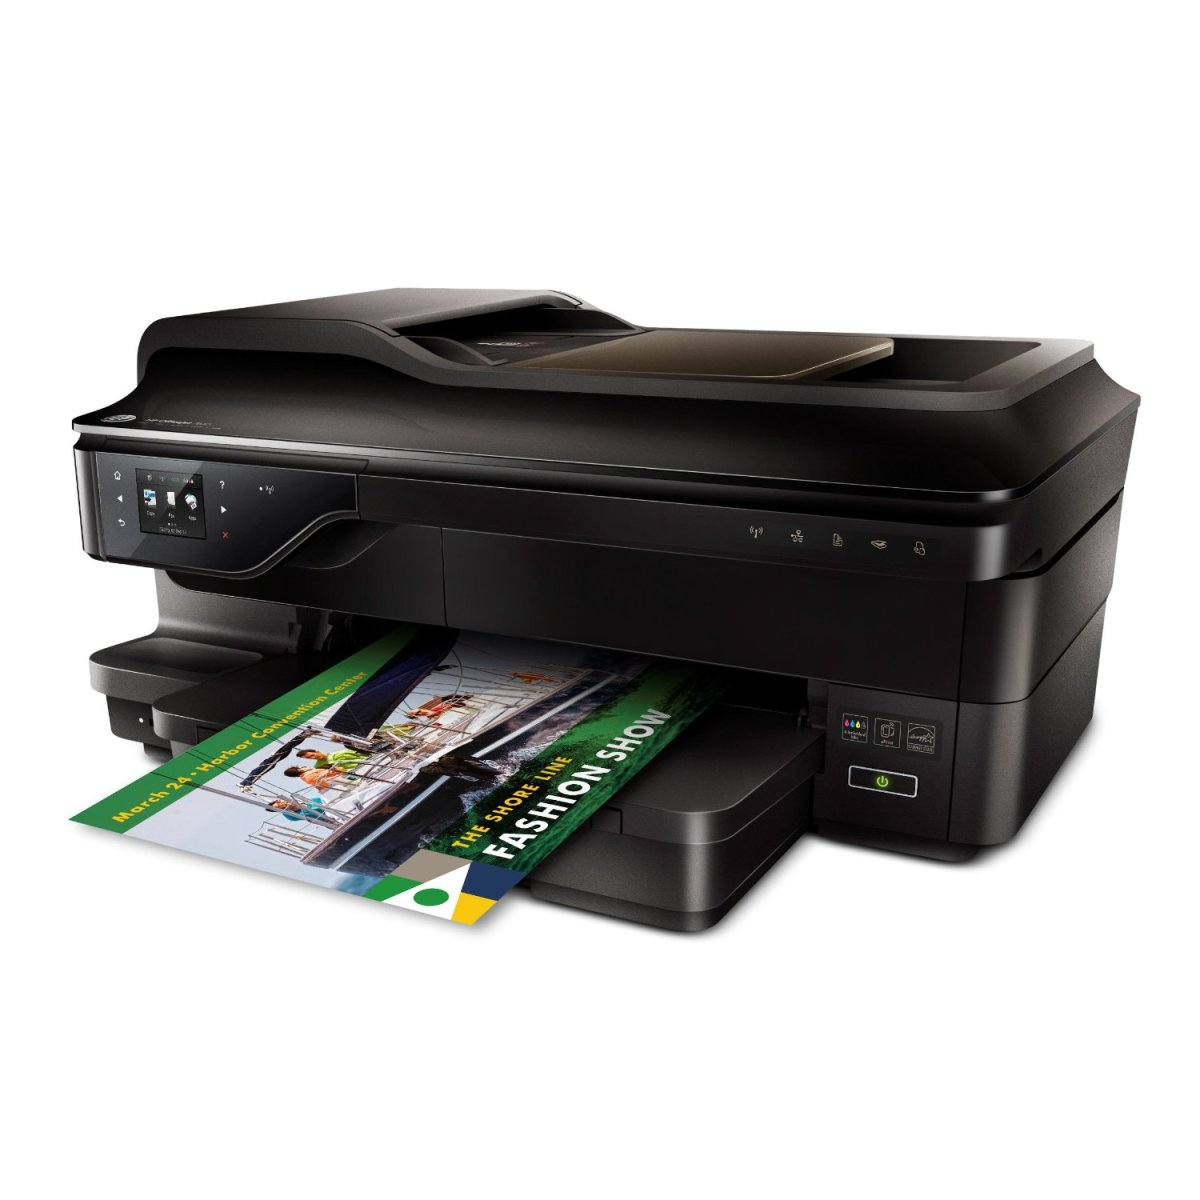 HP OJ 7610 Wireless Color Photo Printer with Scanner, Copier and Fax